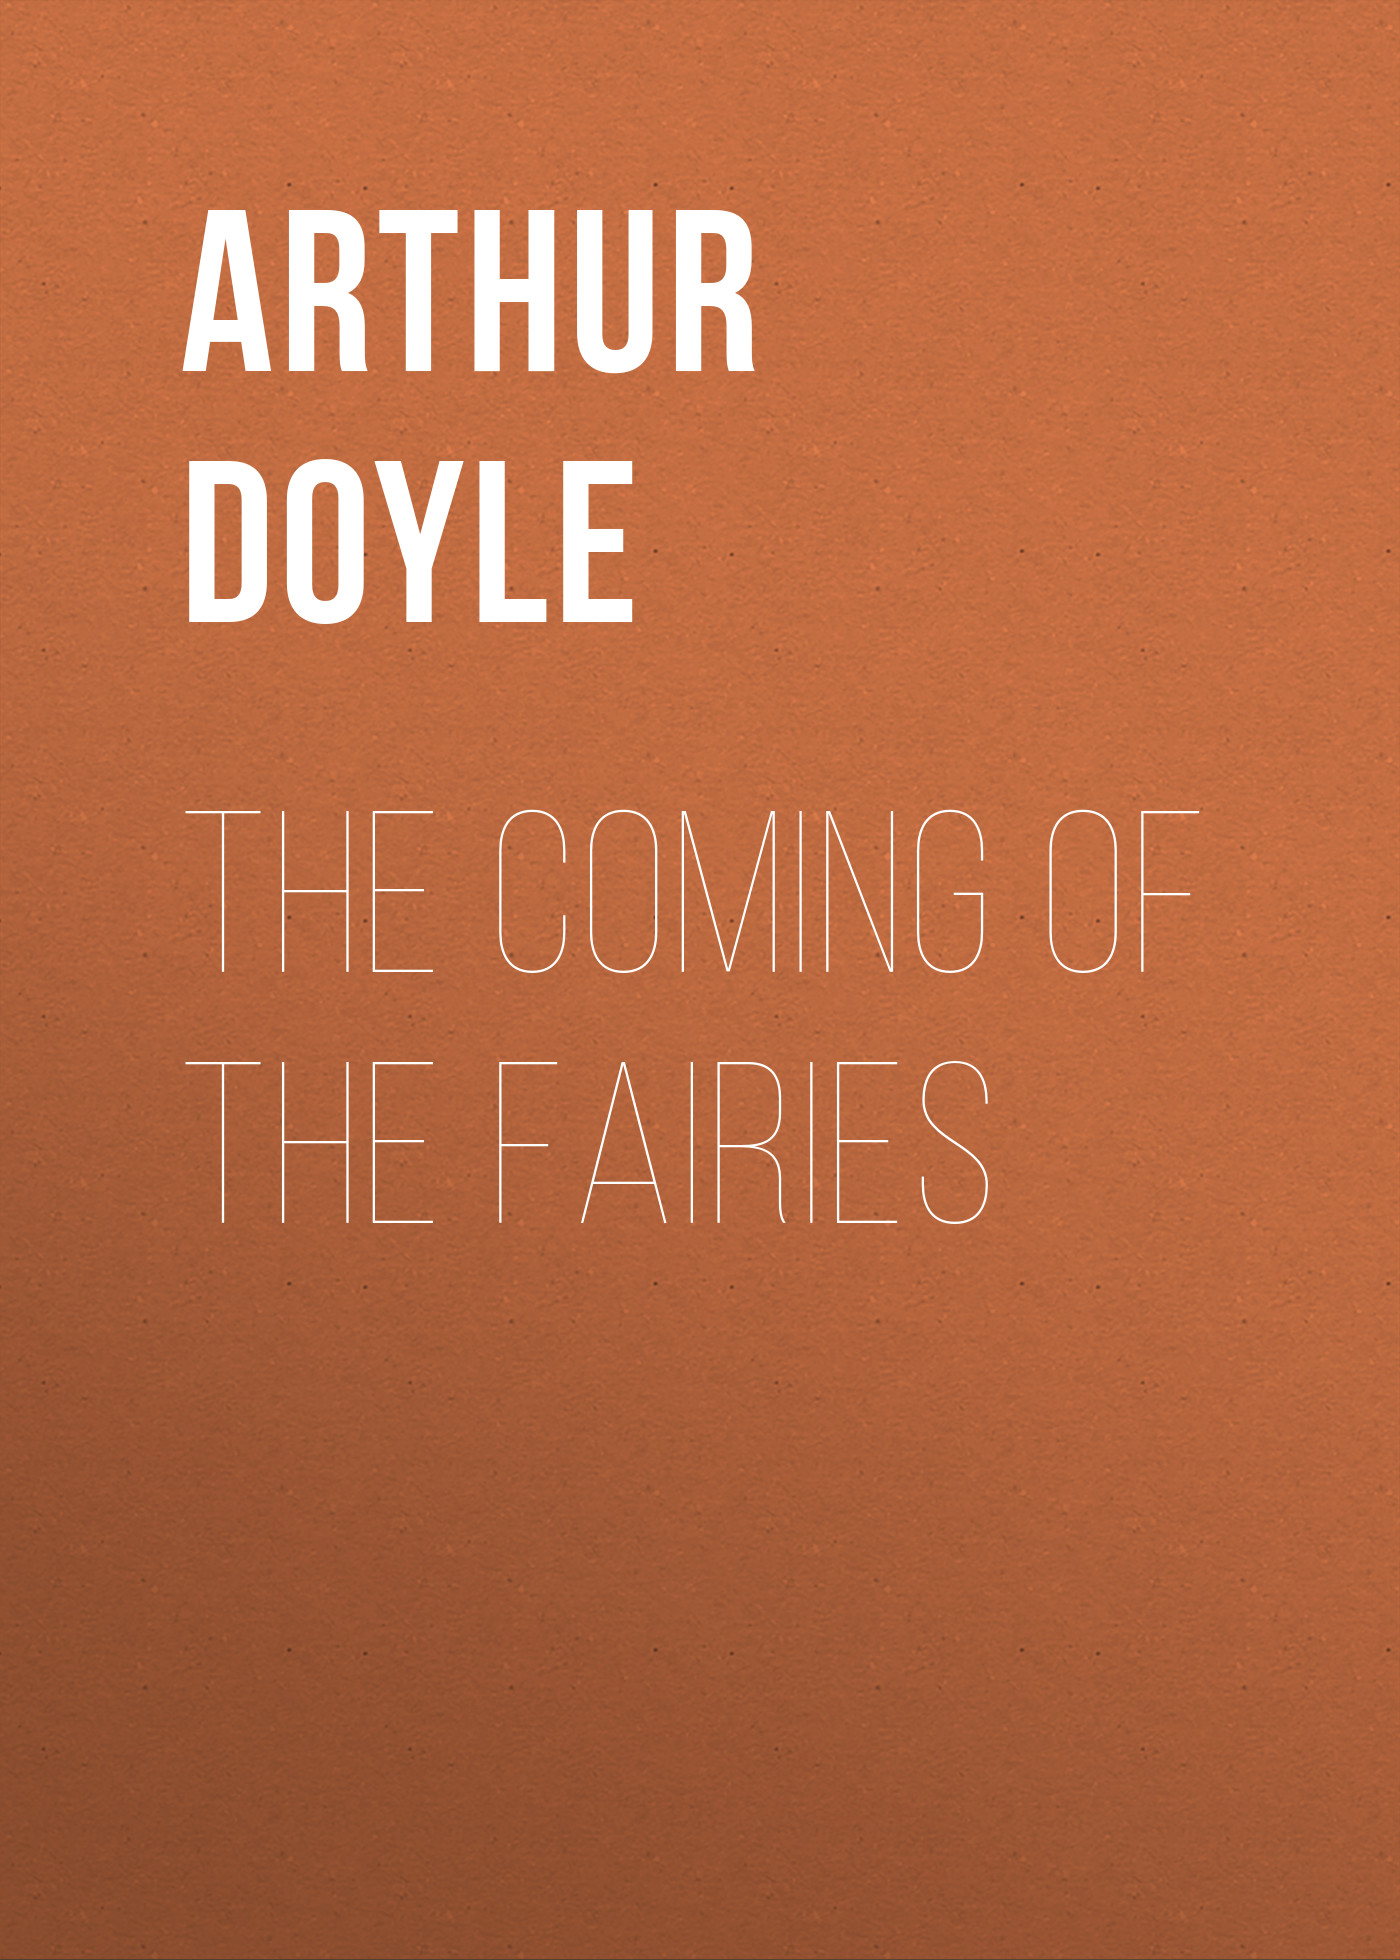 Doyle Arthur Conan The Coming of the Fairies arthur conan doyle the poison belt